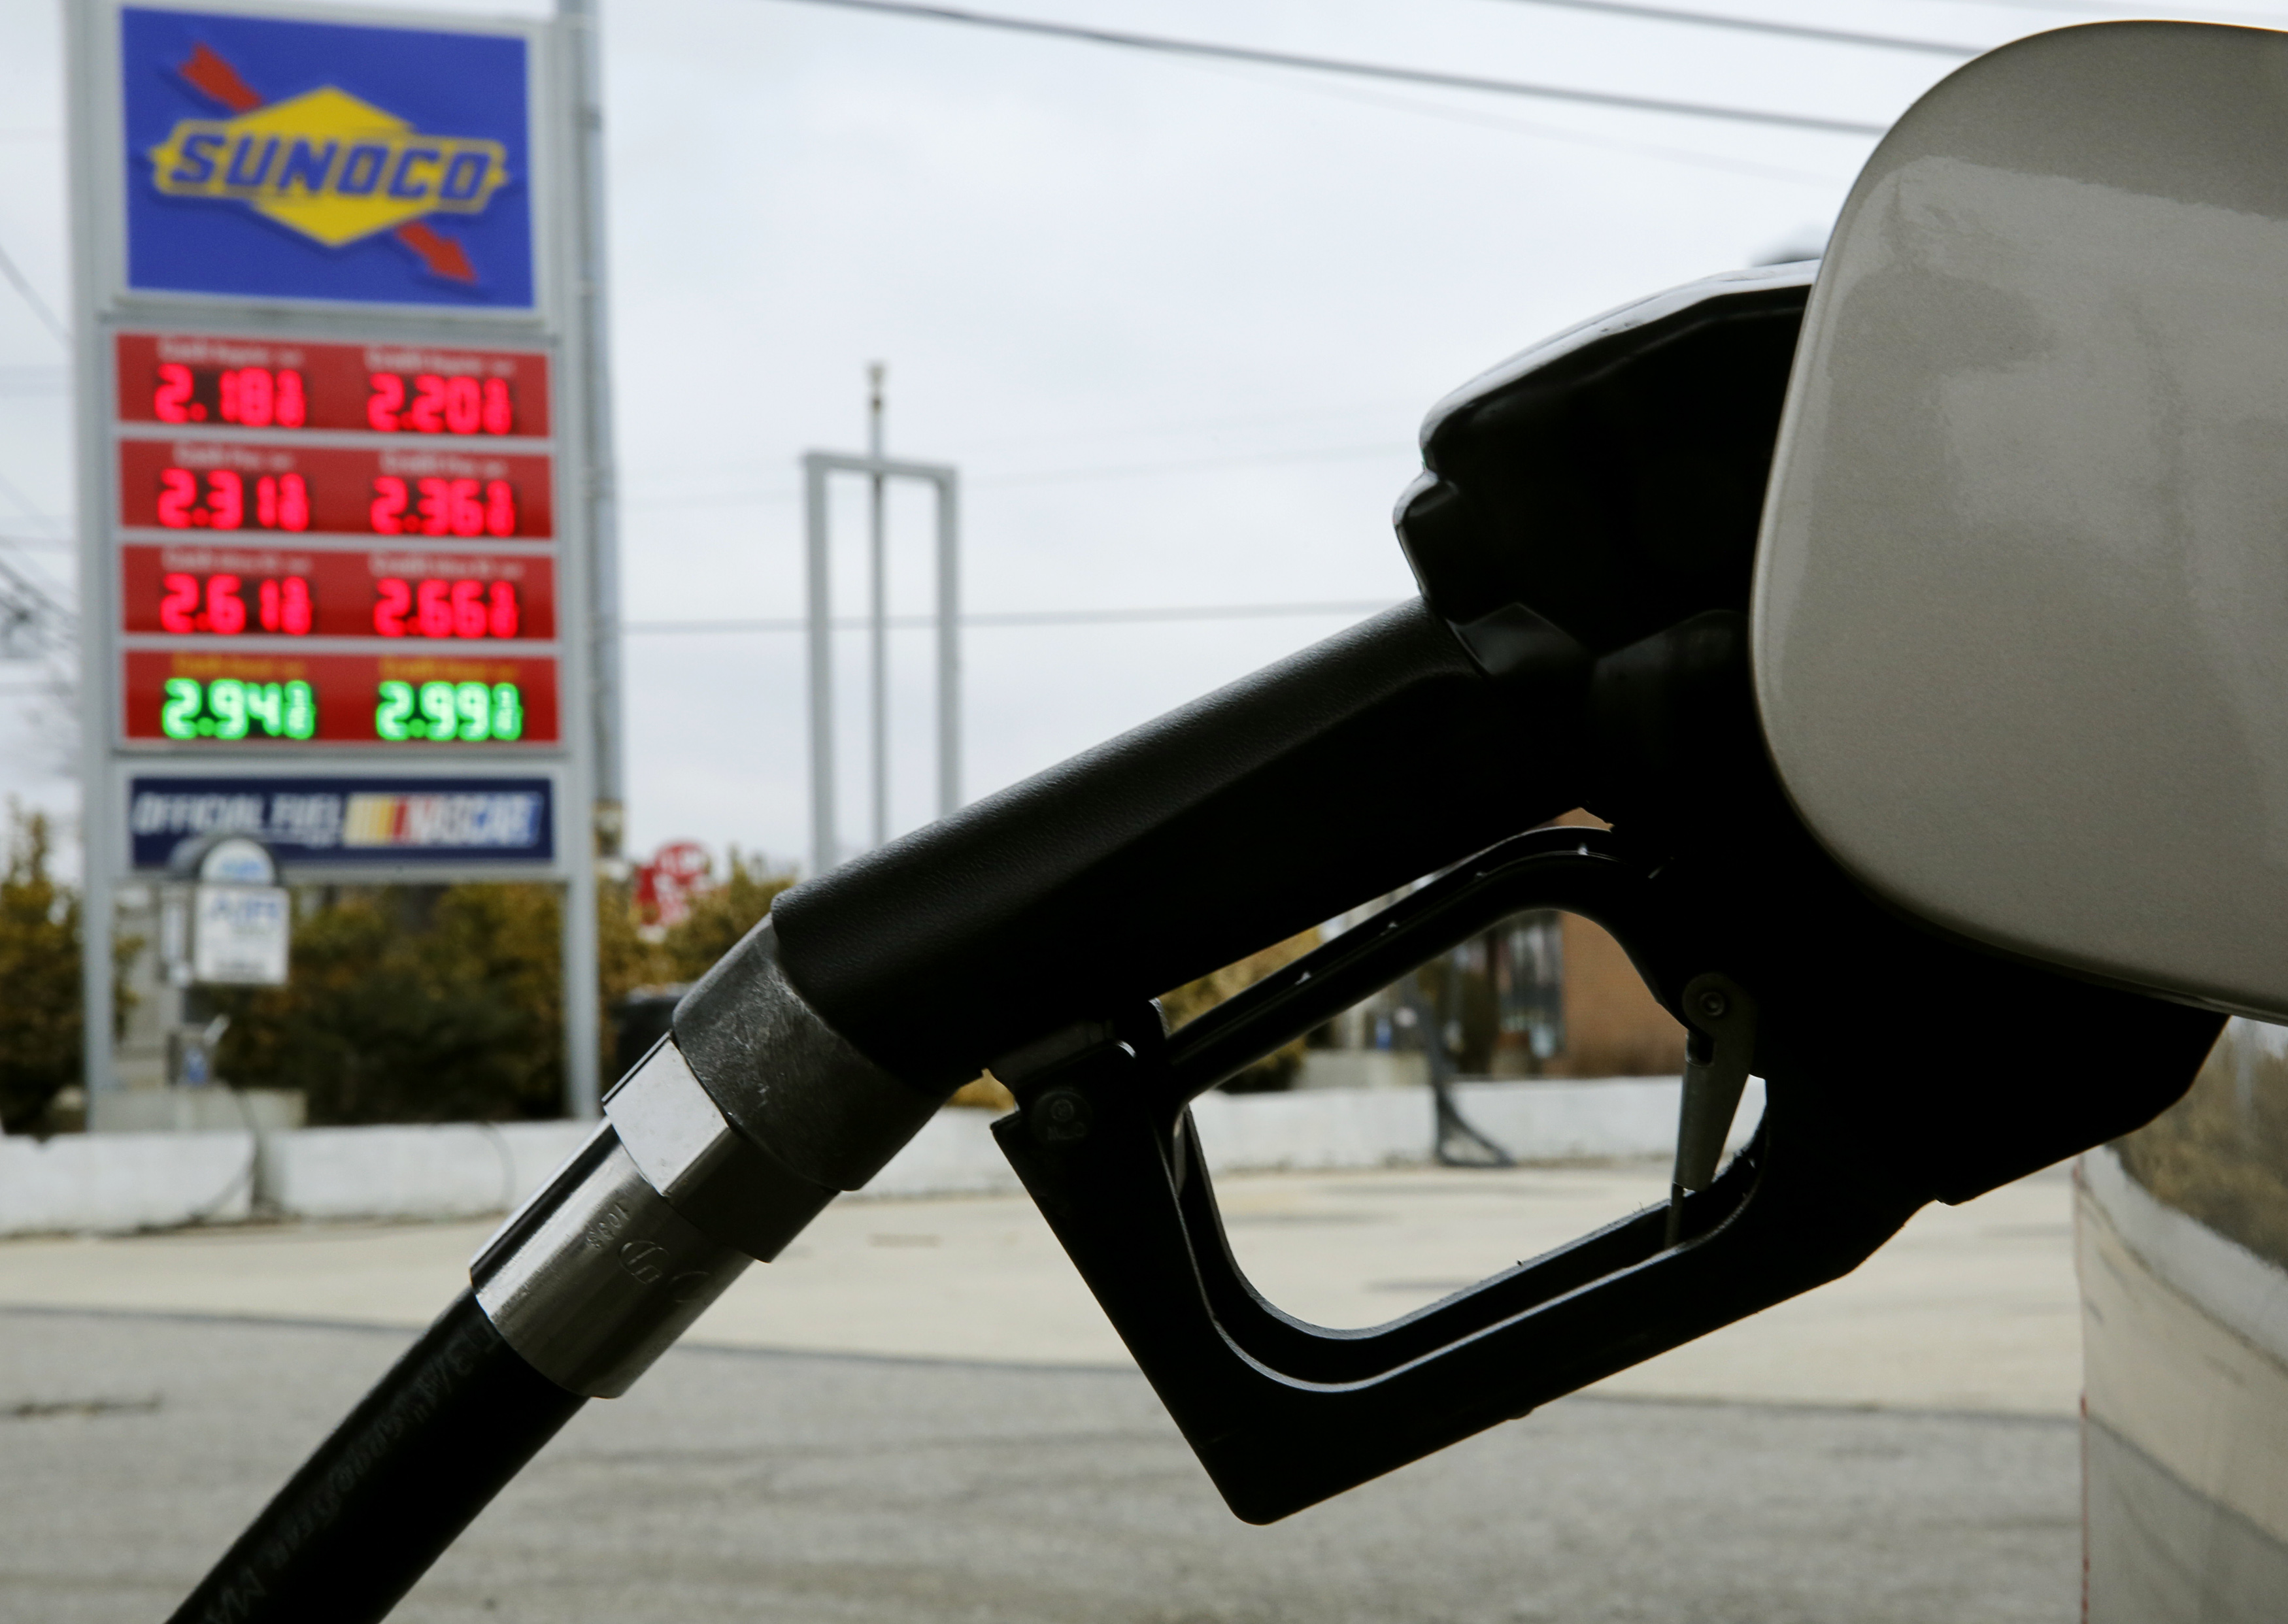 A Sunoco station with current gasoline and diesel prices is seen during a fill up in Colesville, Maryland, February 10, 2015. REUTERS/Gary Cameron